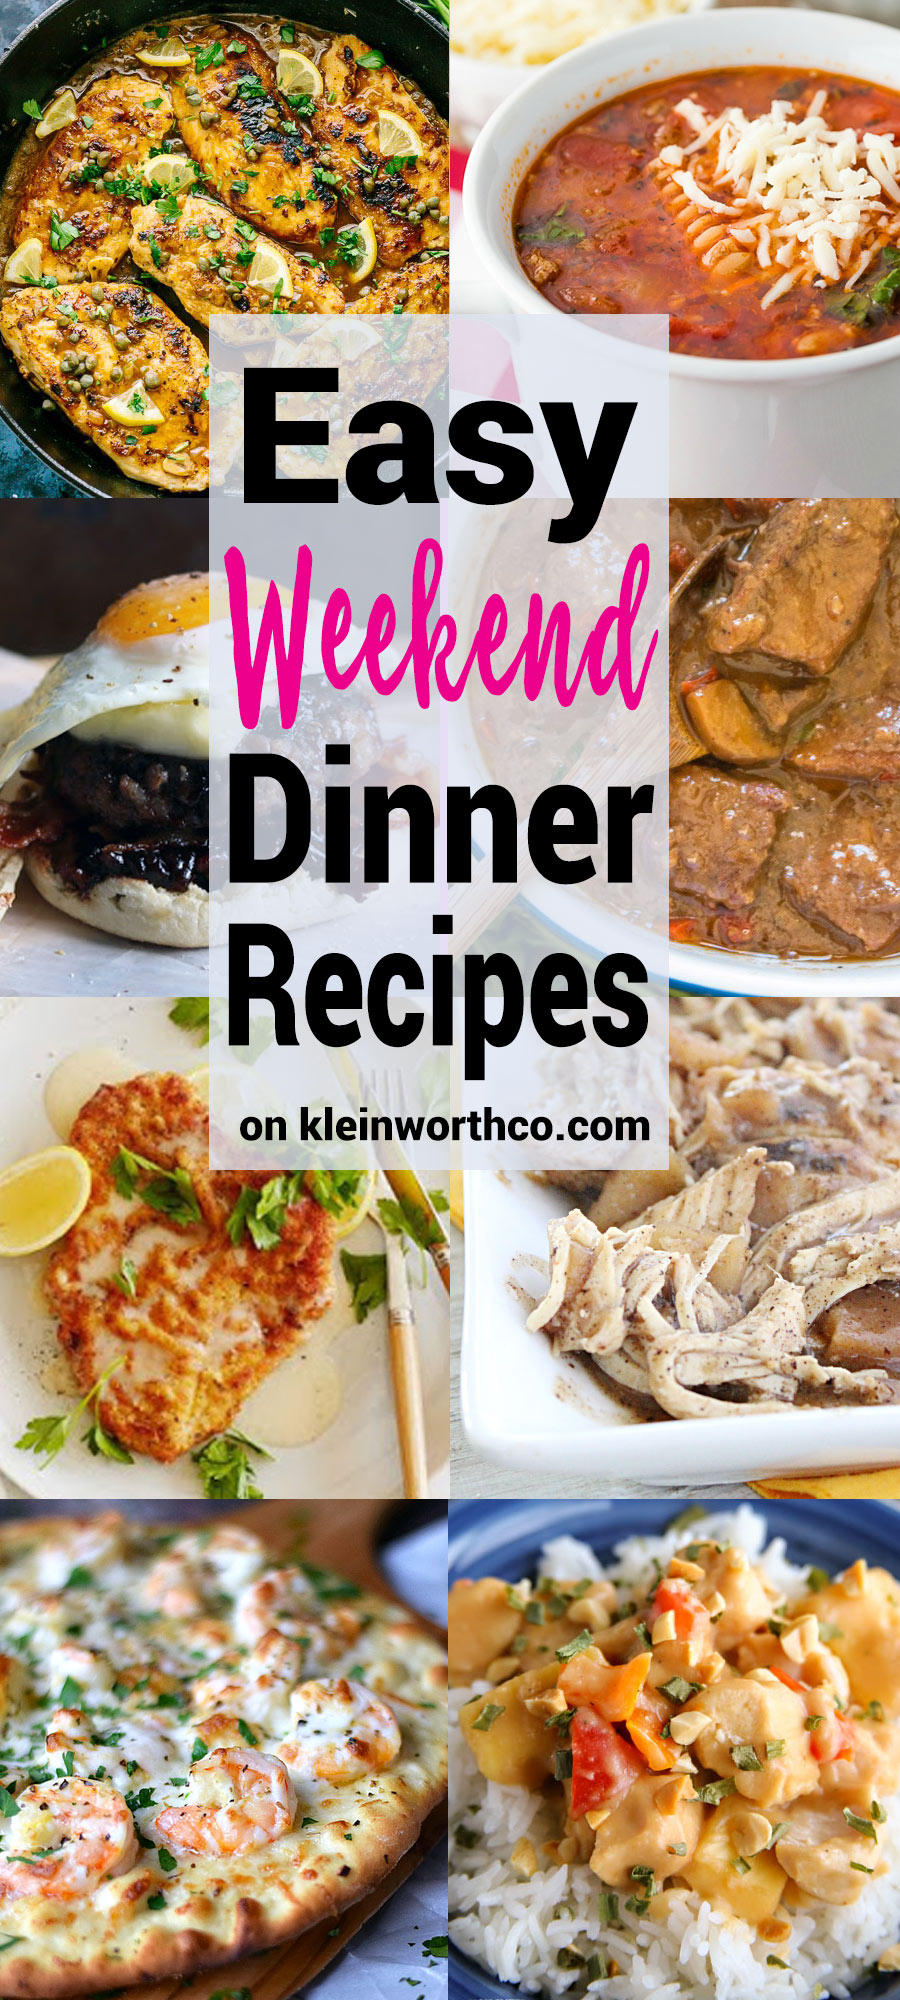 Easy Weekend Dinner Recipes